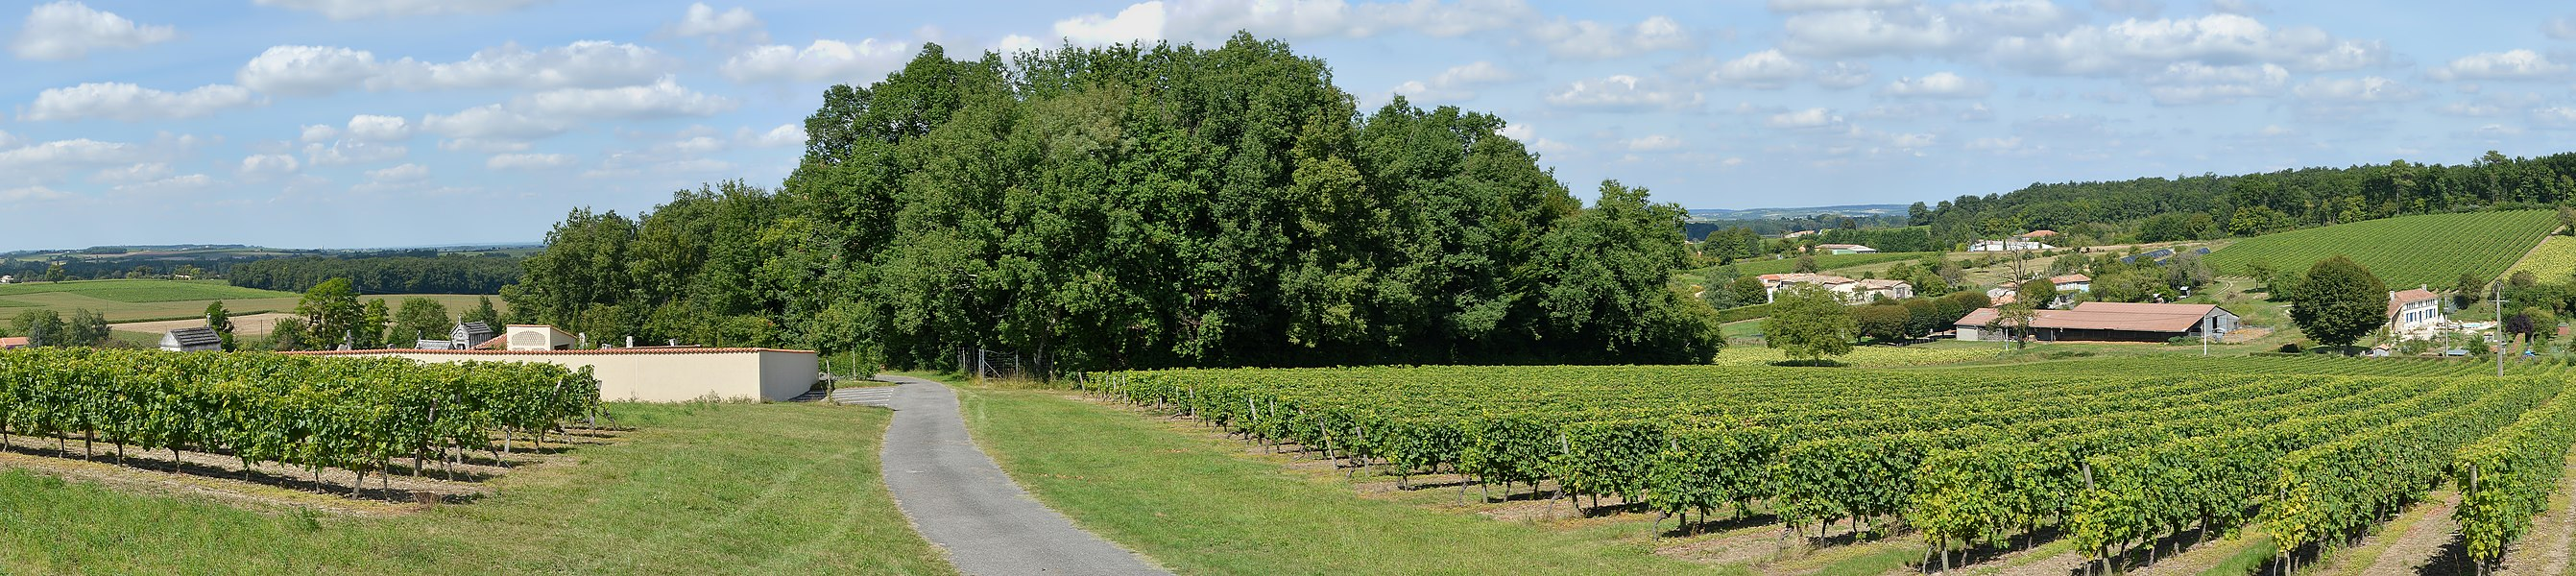 Landscape with vineyards in the cognac area (Petite Champagne), N-NE of Montchaude, Charente, France.